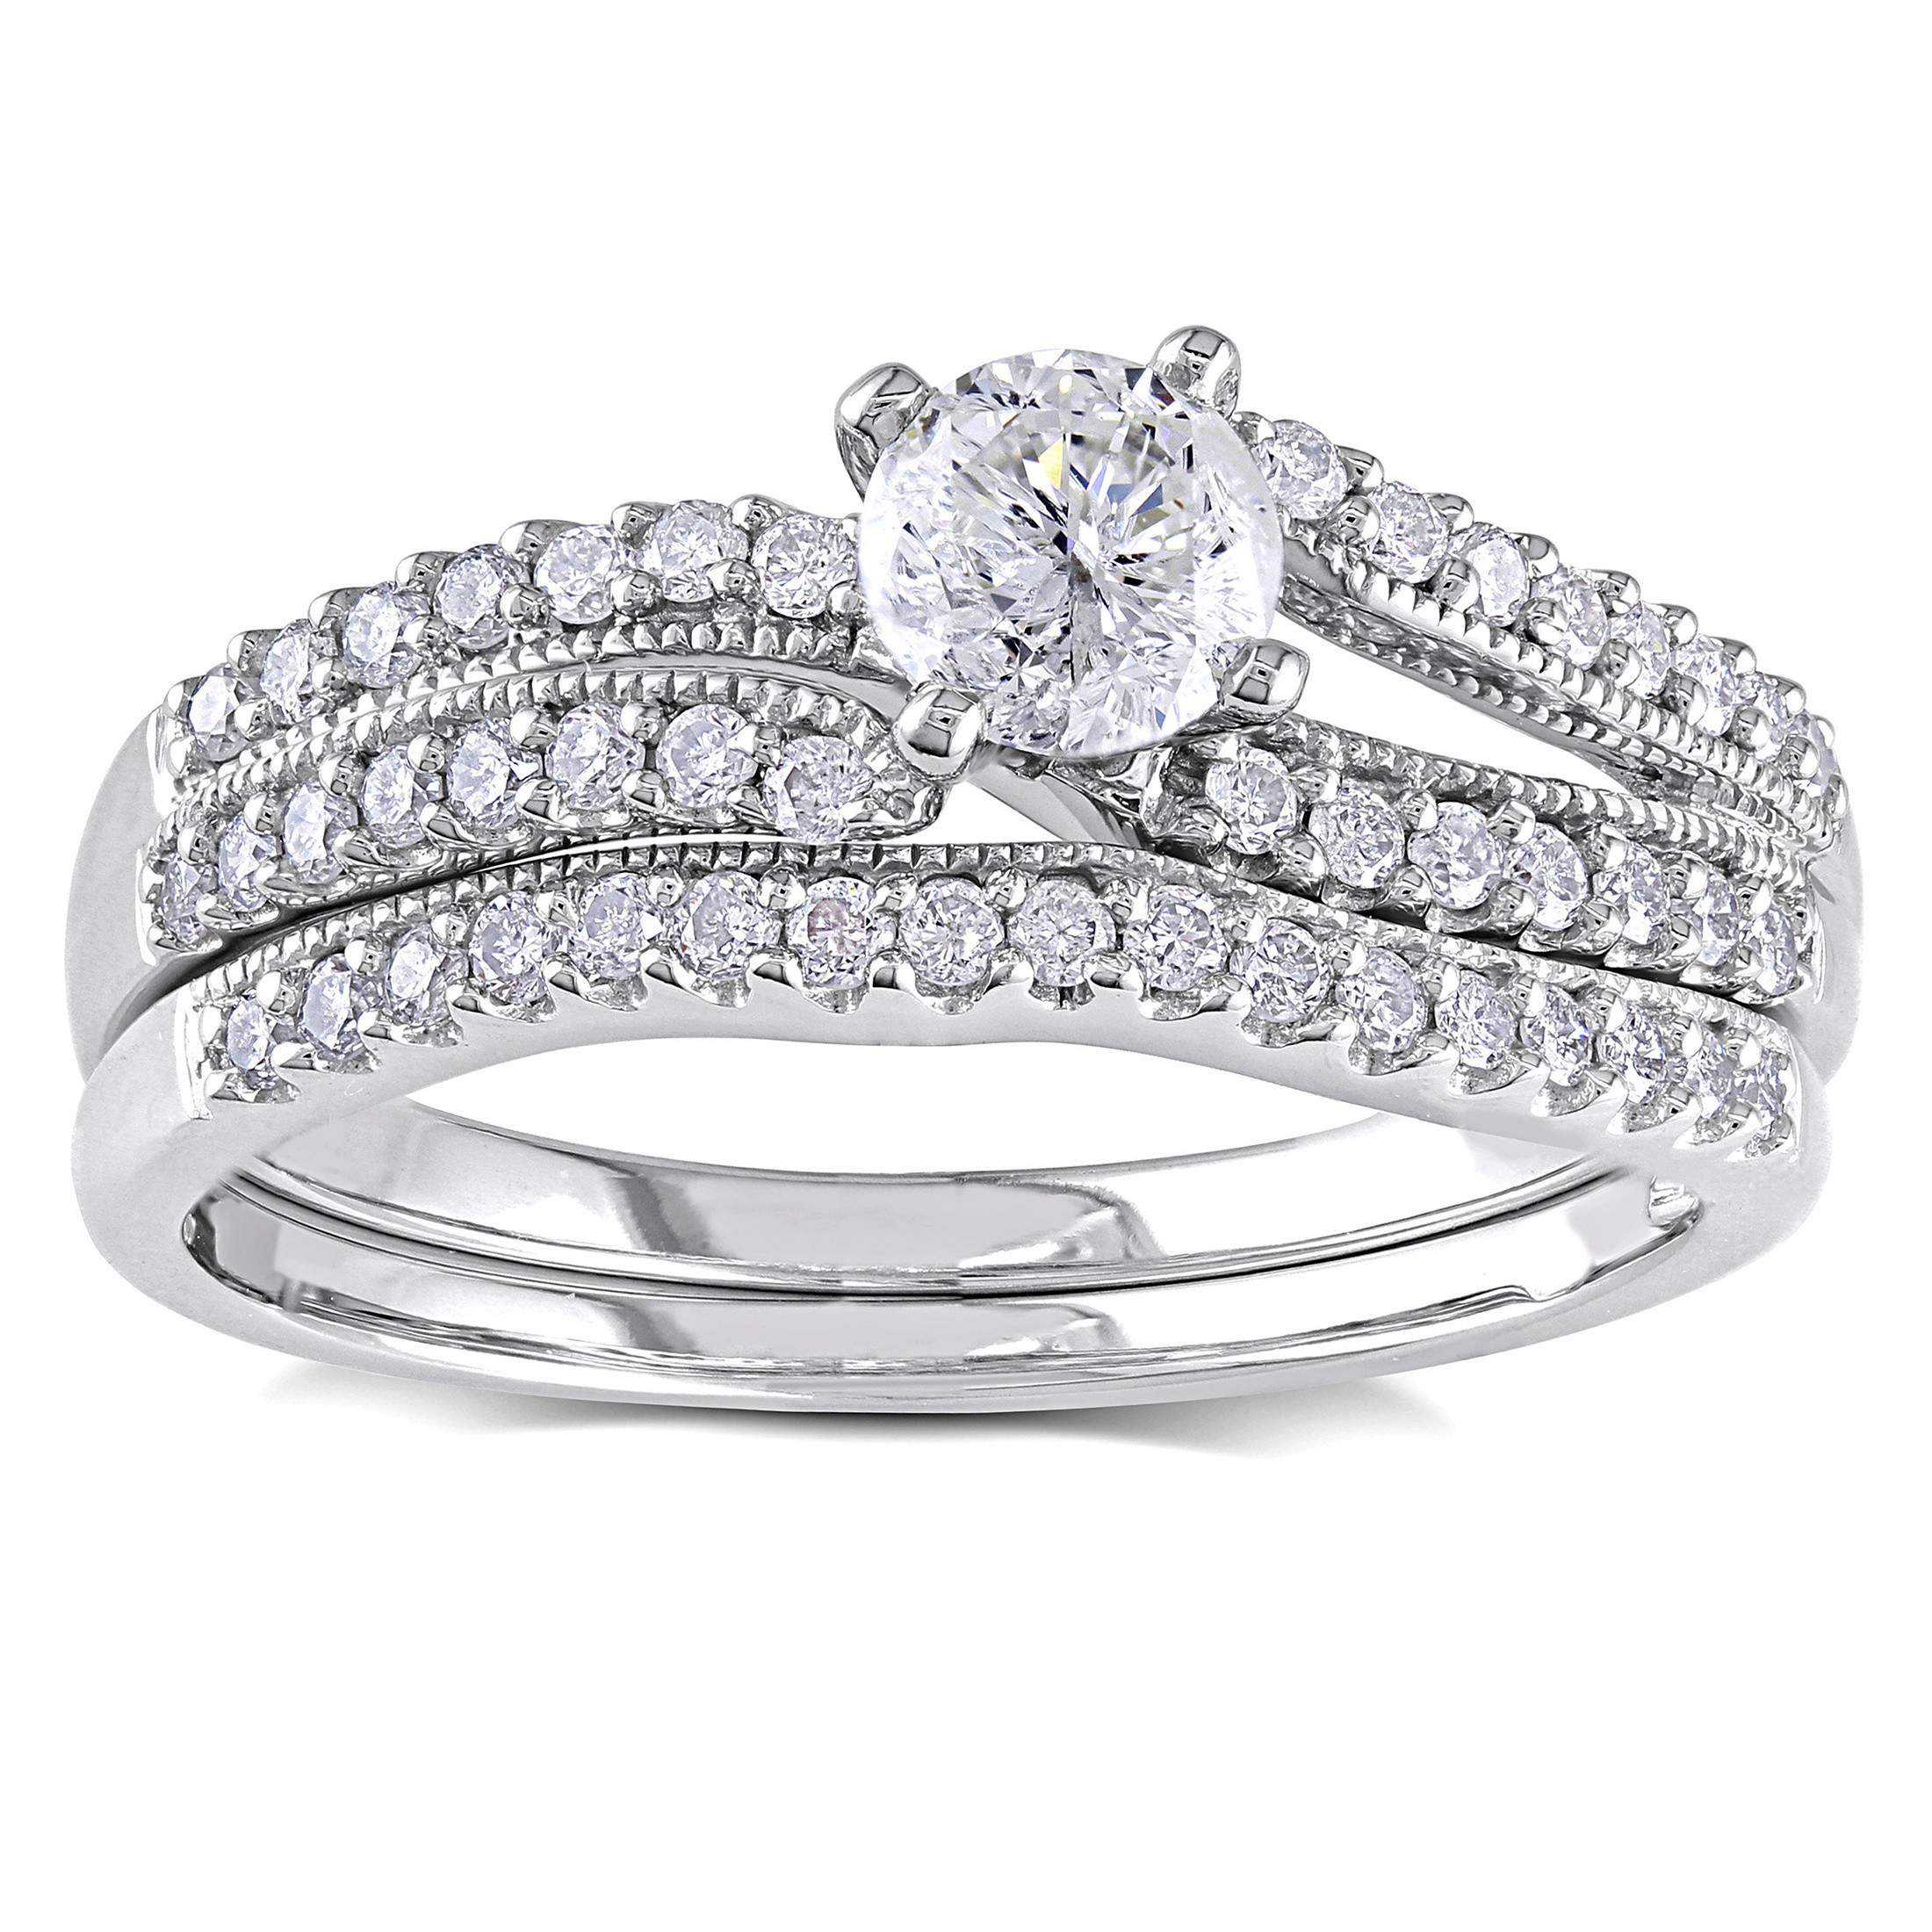 Bridal sets diamond bridal sets for women for Ladies diamond wedding ring sets